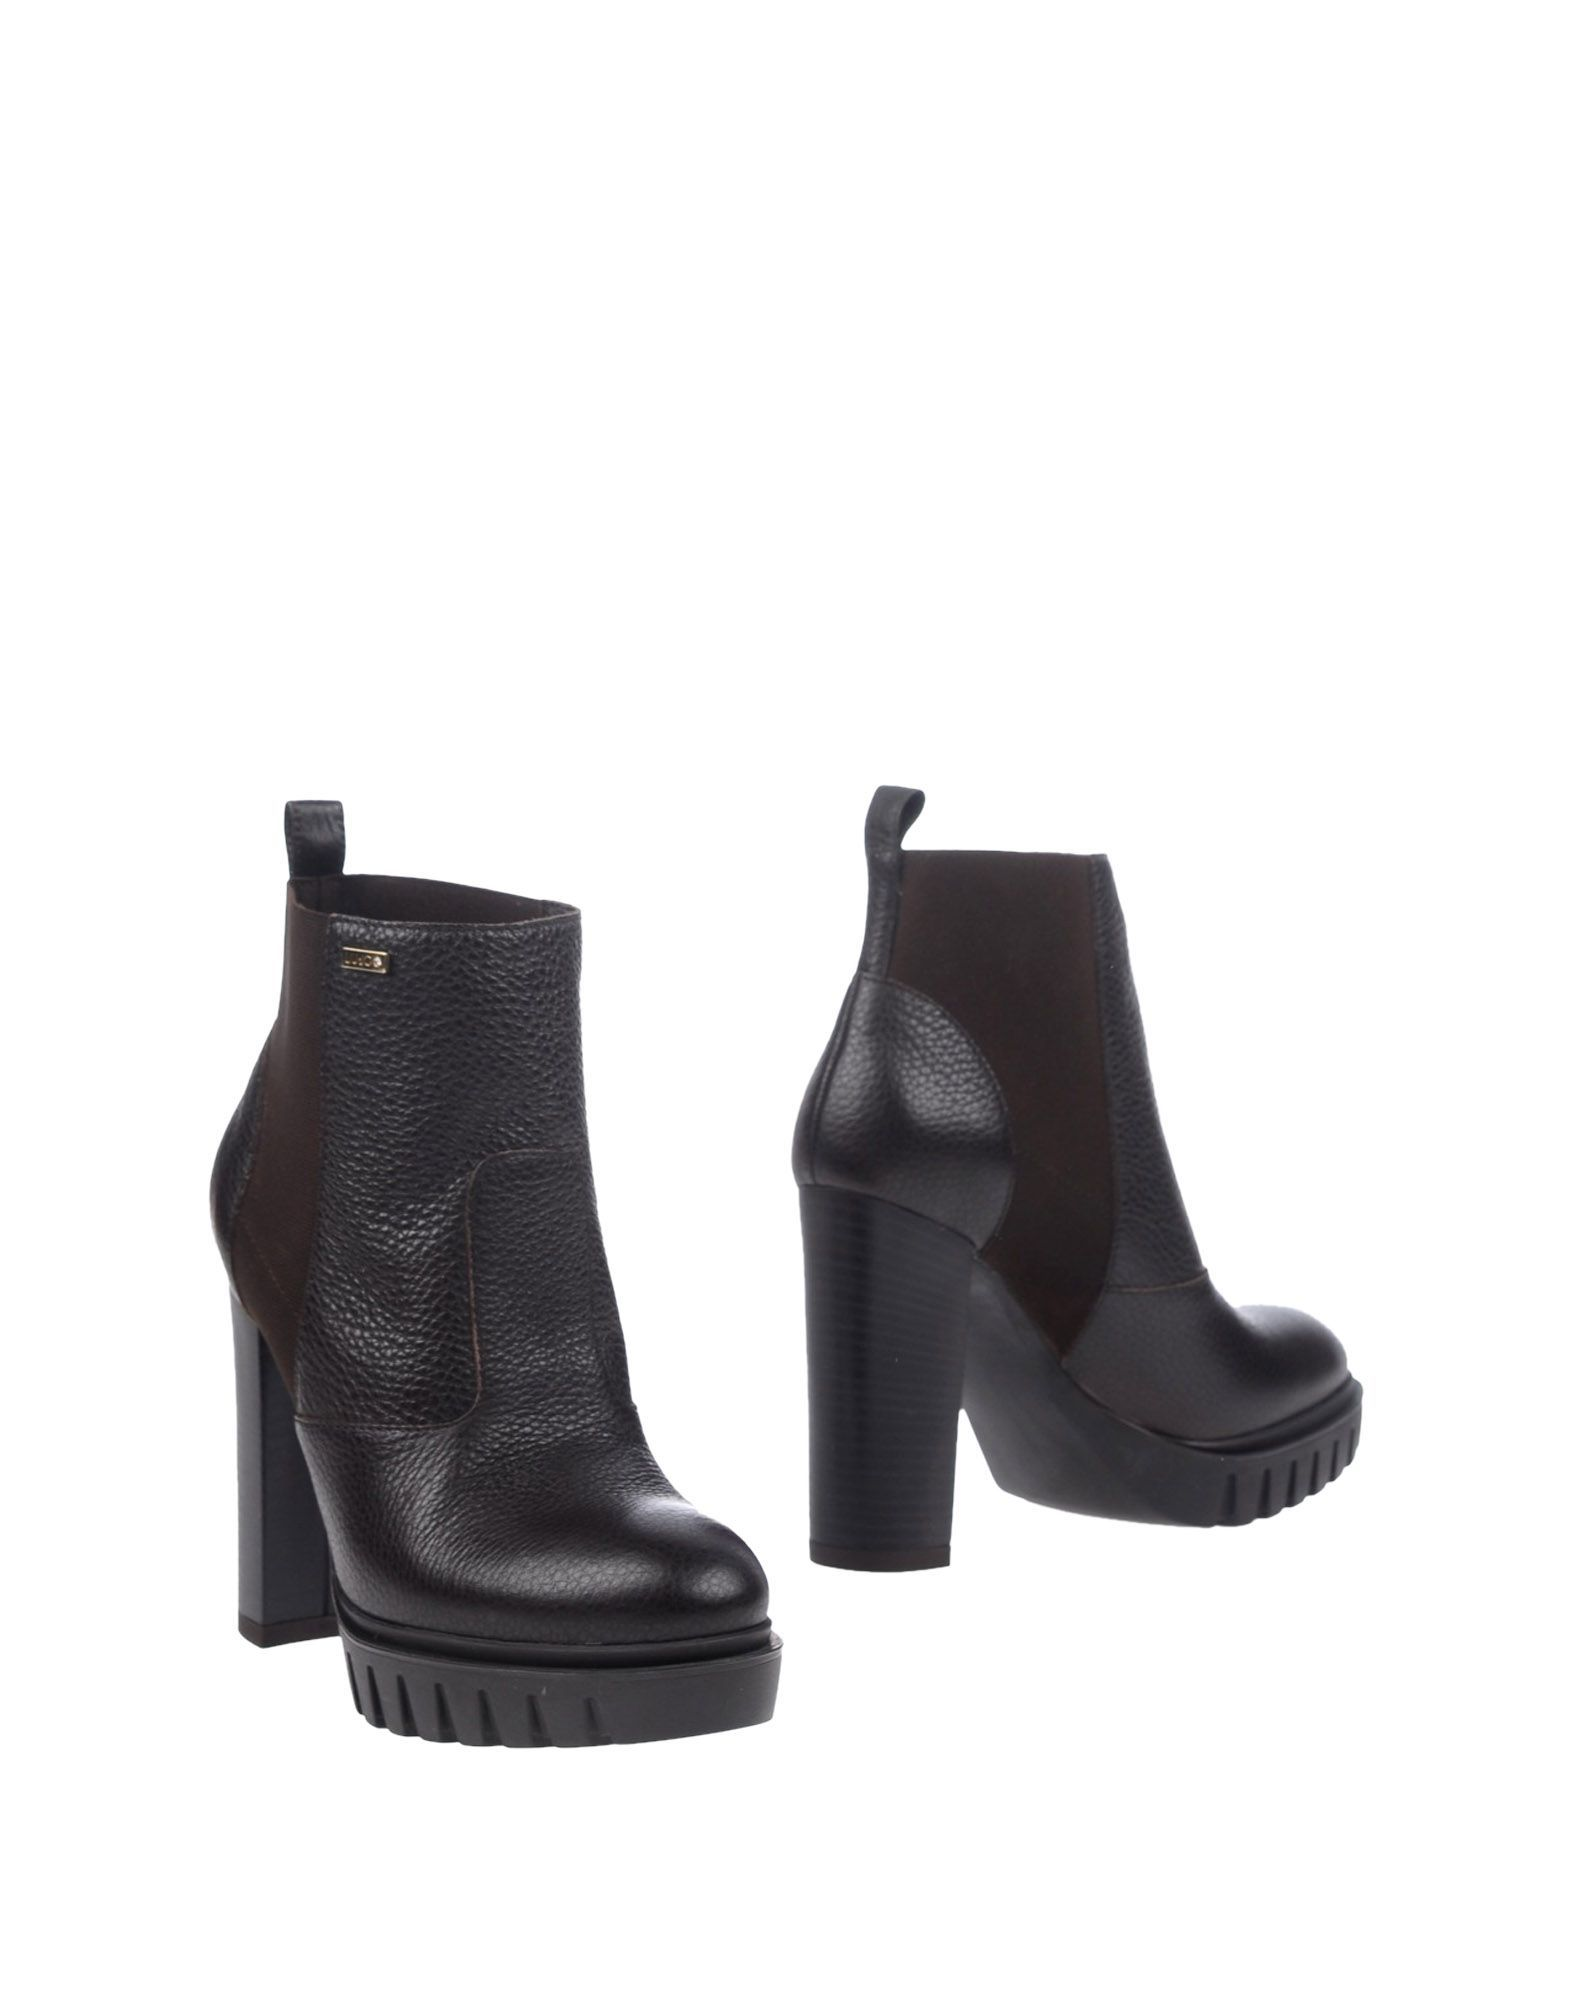 Liu Jo Dark Brown Leather Heeled Ankle Boots